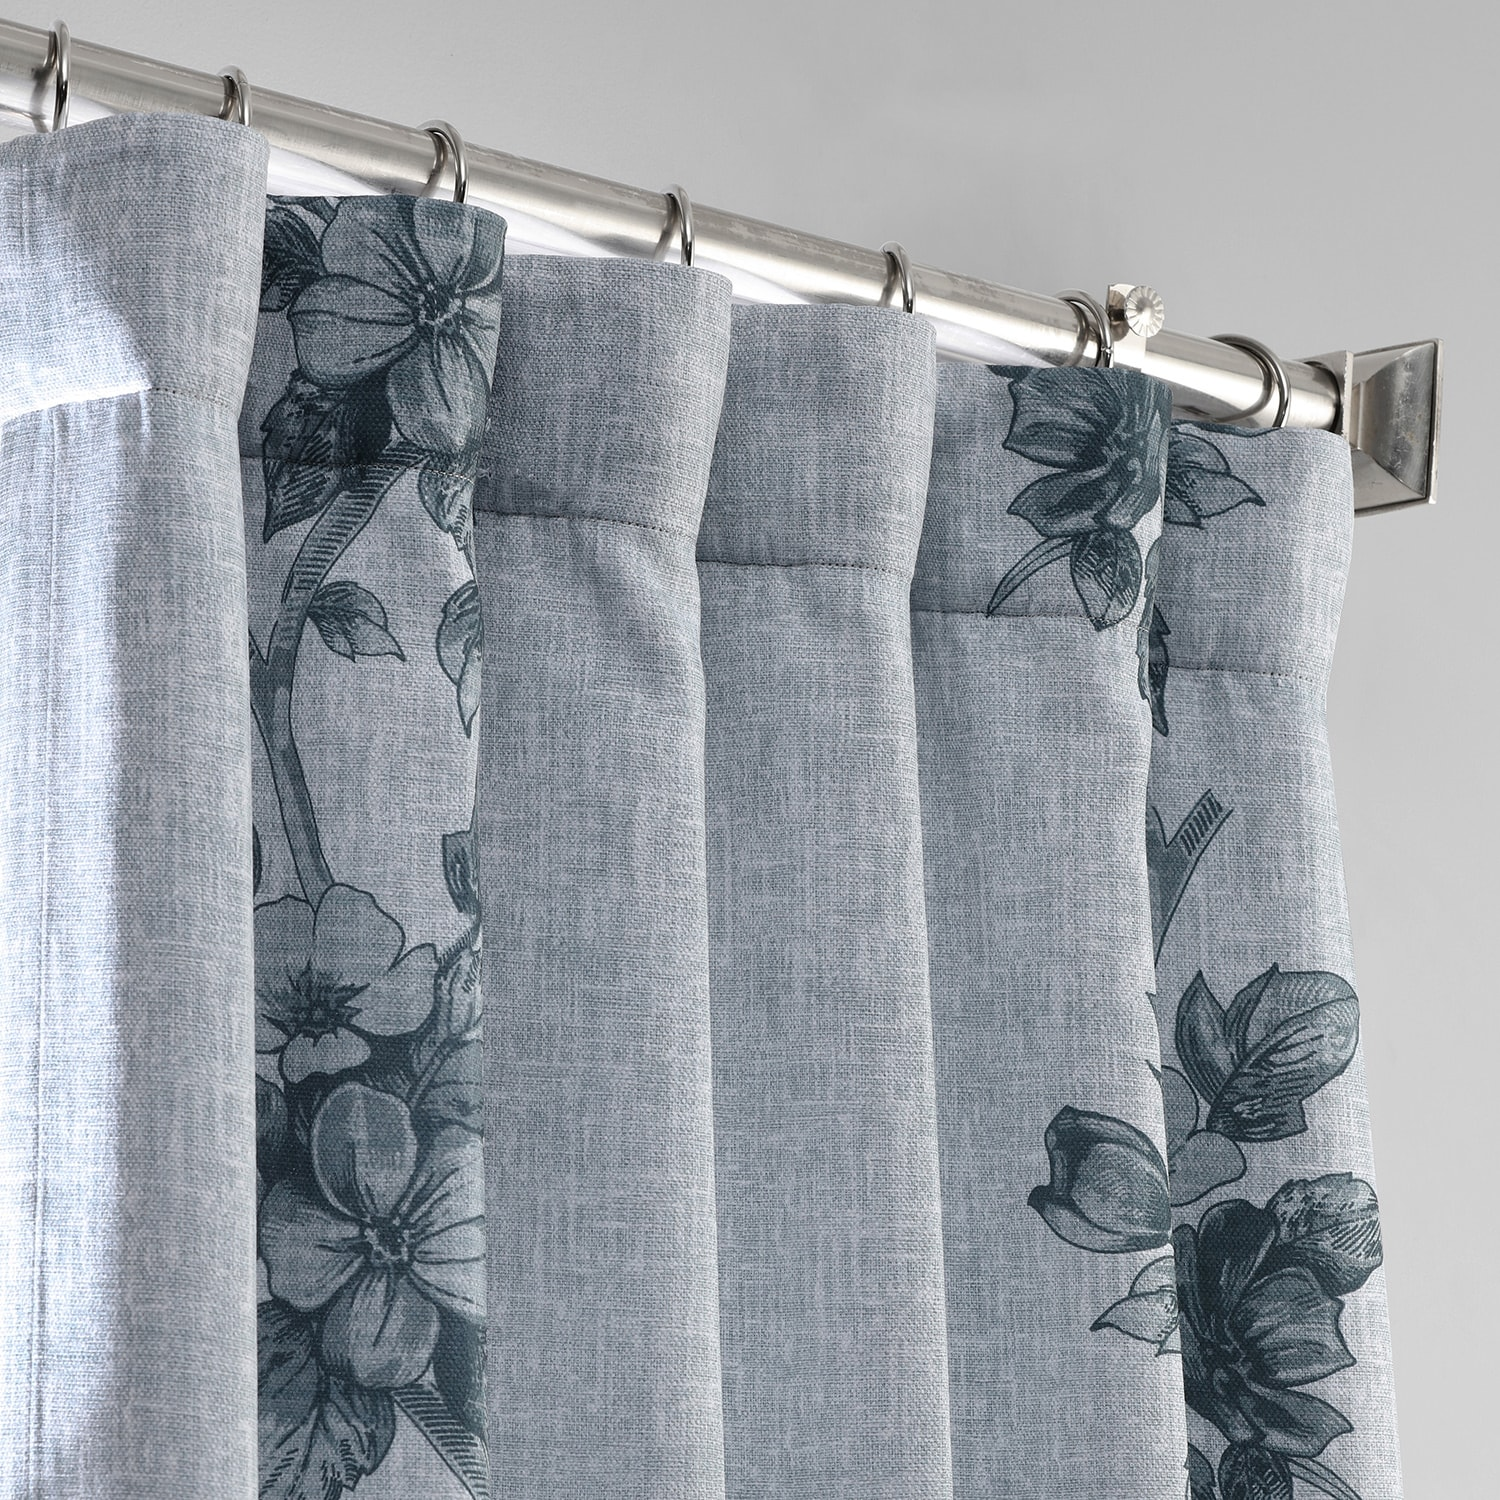 Copenhagen Grey Printed Linen Textured Blackout Curtain